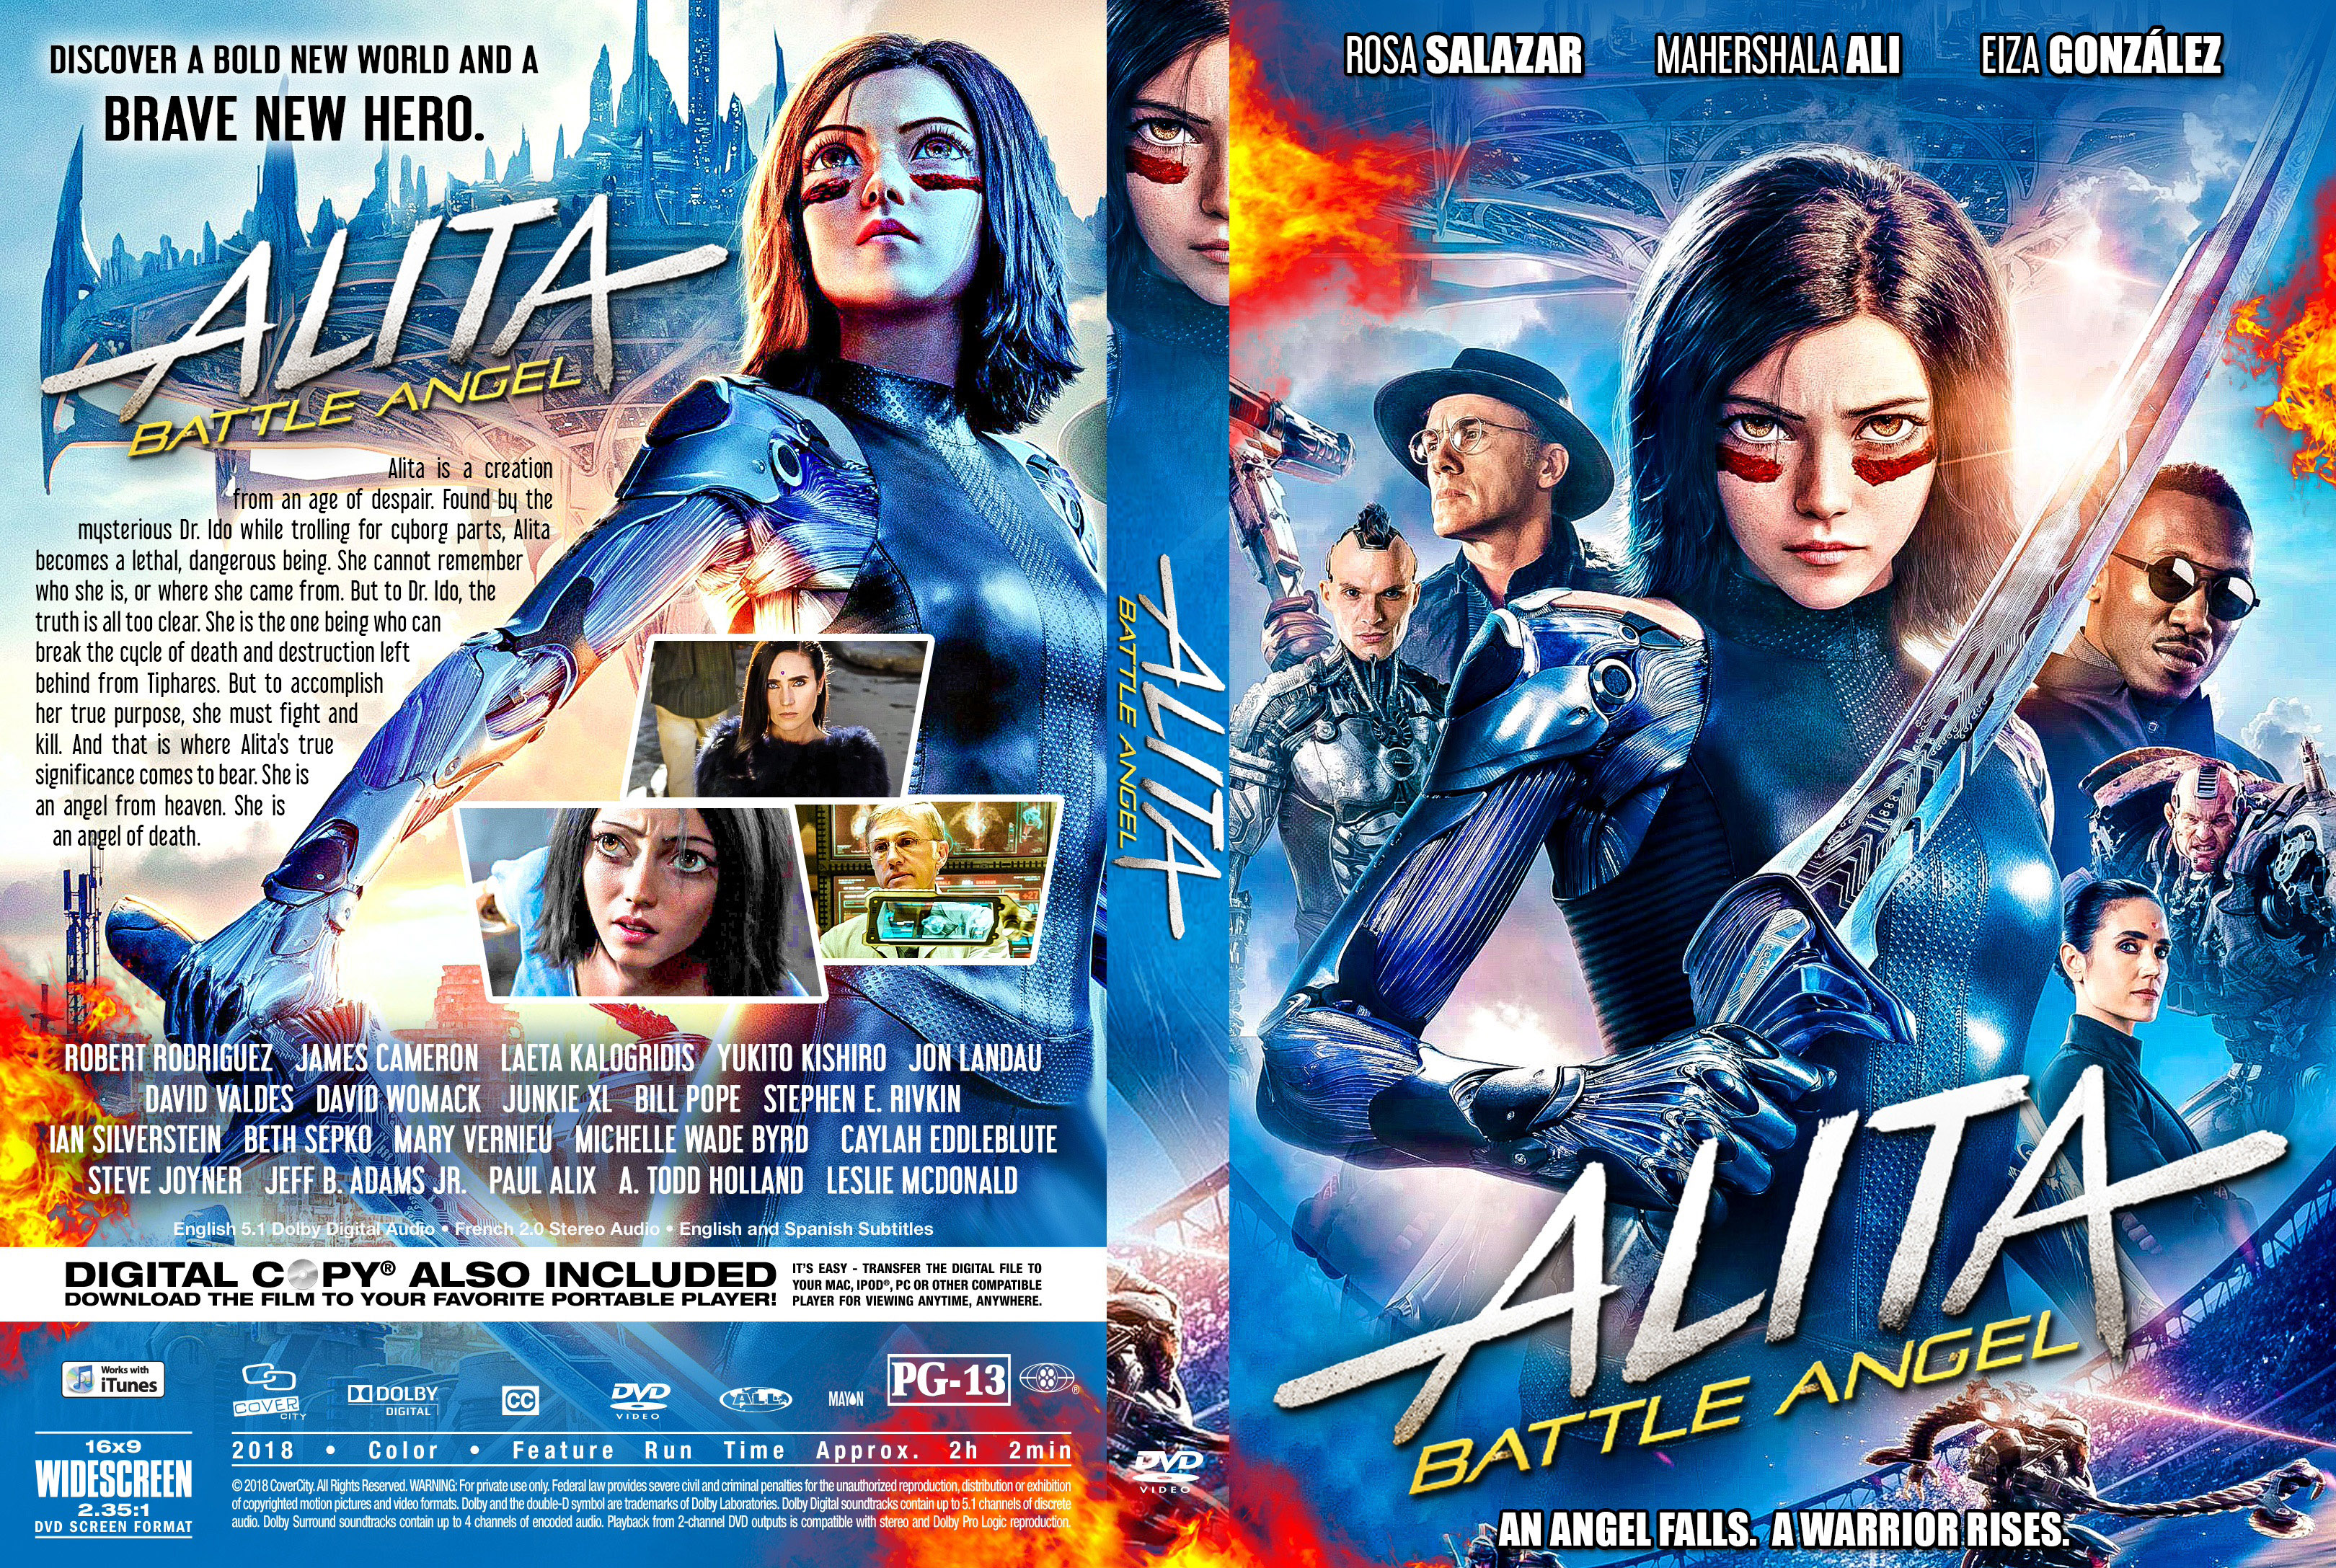 Alita Battle Angel 2019 Front Dvd Covers Cover Century Over 500 000 Album Art Covers For Free